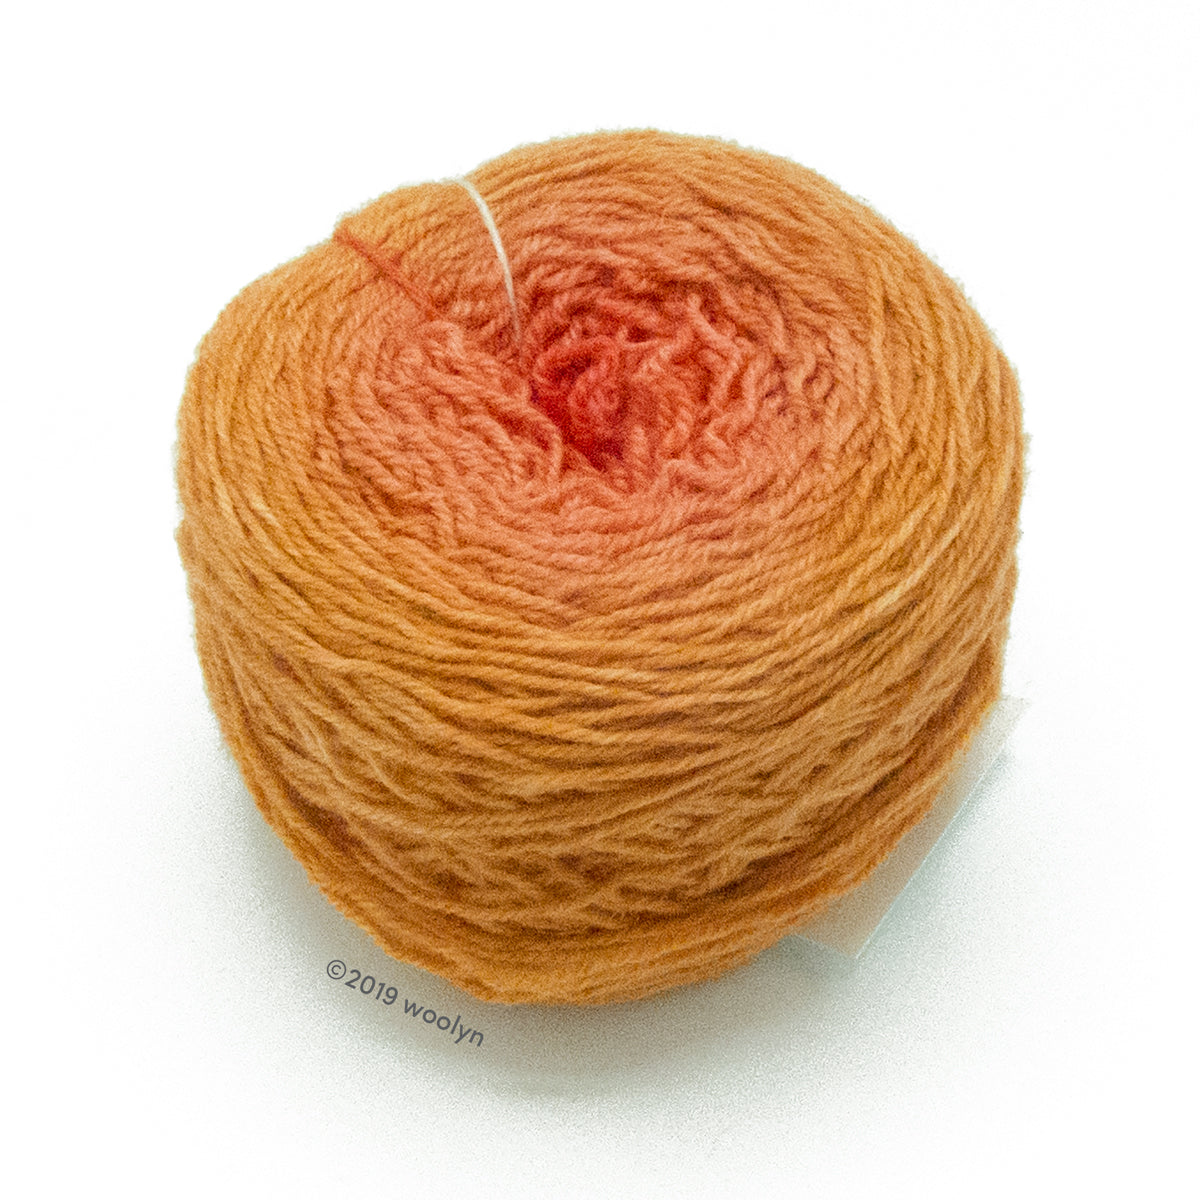 A wound cake of hand dyed fingering weight yarn from Apple Tree Knits..  Yarn is a gradient from pinkish orange to pumpkin.